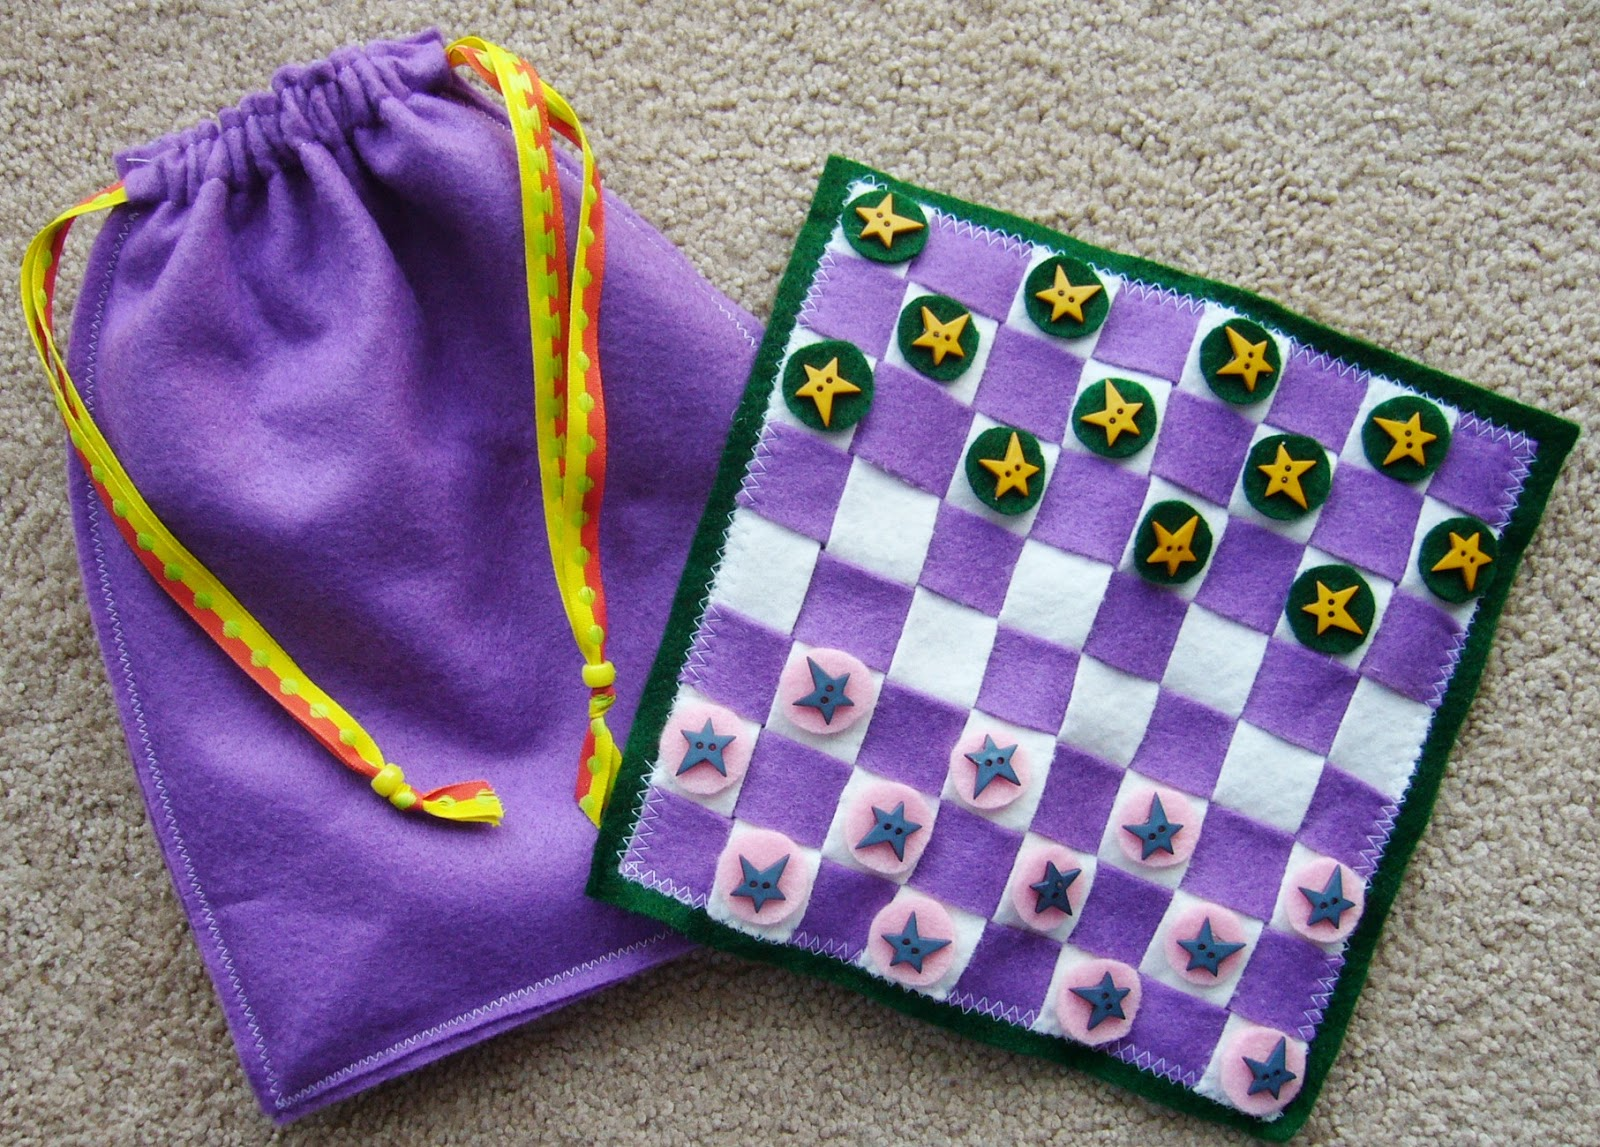 Simply Shoeboxes: DIY Travel Checkers Game with Drawstring Bag